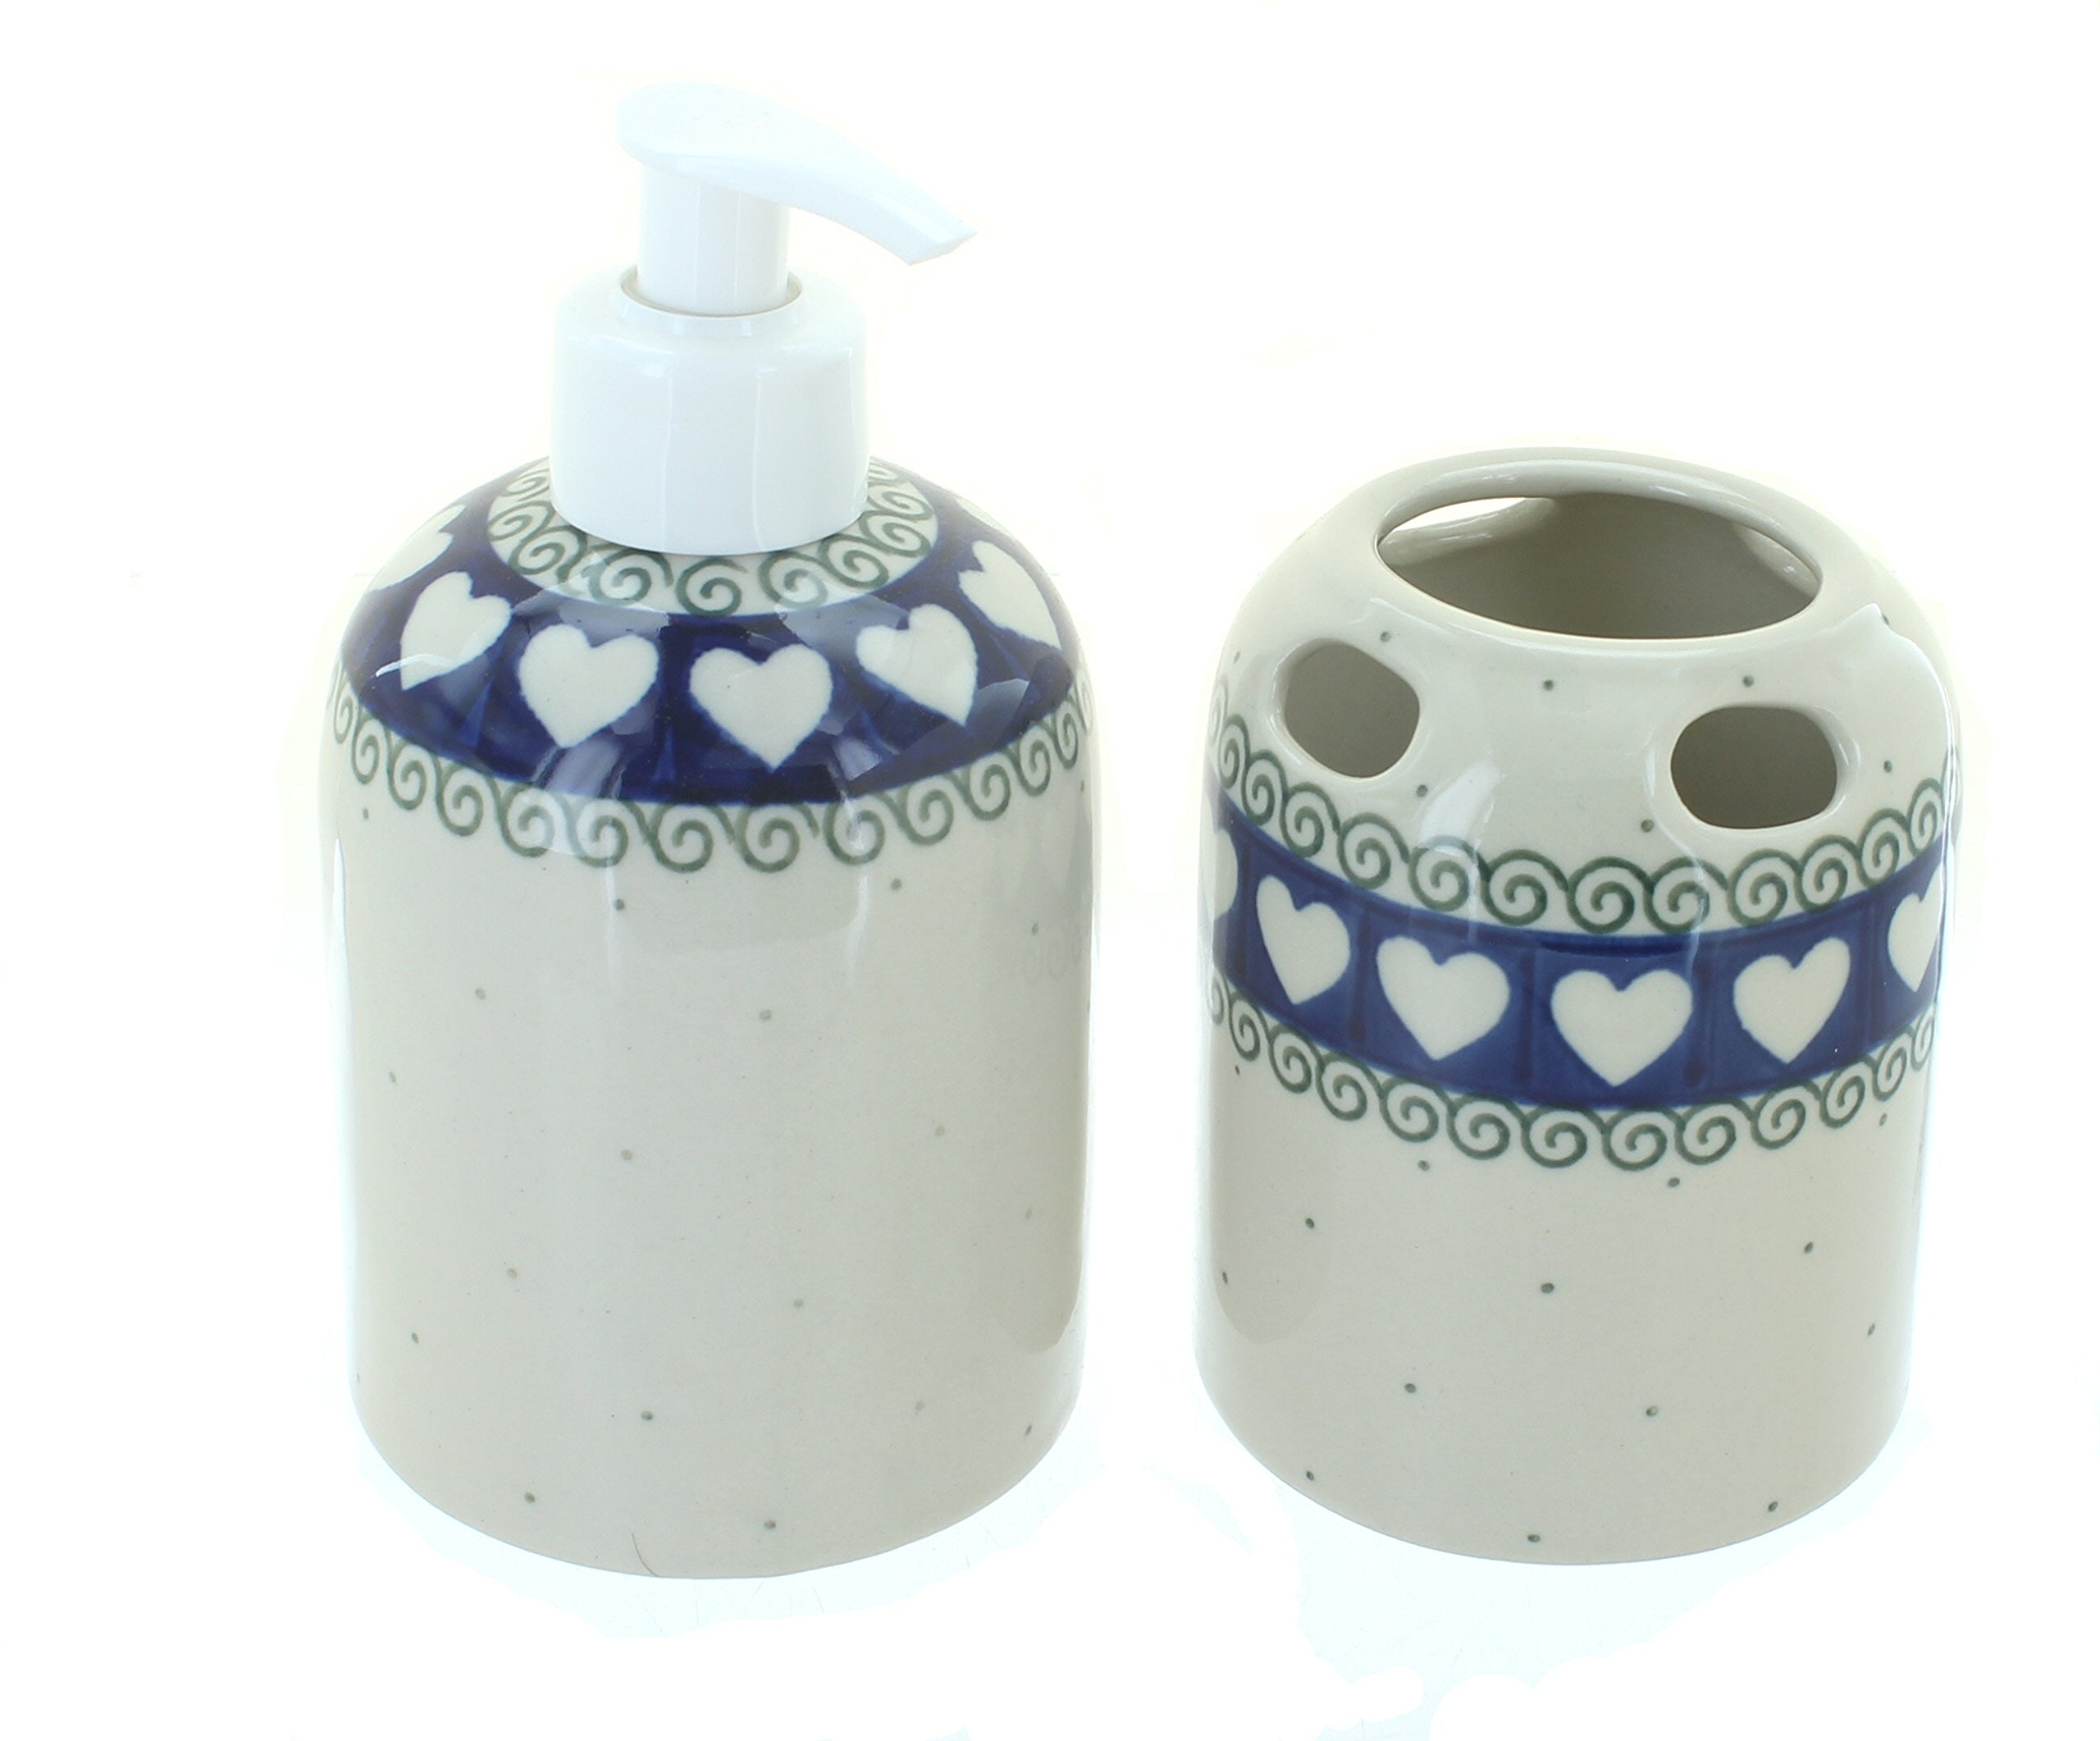 Blue Rose Polish Pottery Cupid Soap Dispenser & Toothbrush Holder - Hand made in Poland Safe to use in microwave, dishwasher, freezer, oven No lead or cadmium - bathroom-accessory-sets, bathroom-accessories, bathroom - 81XuR0yG2kL -